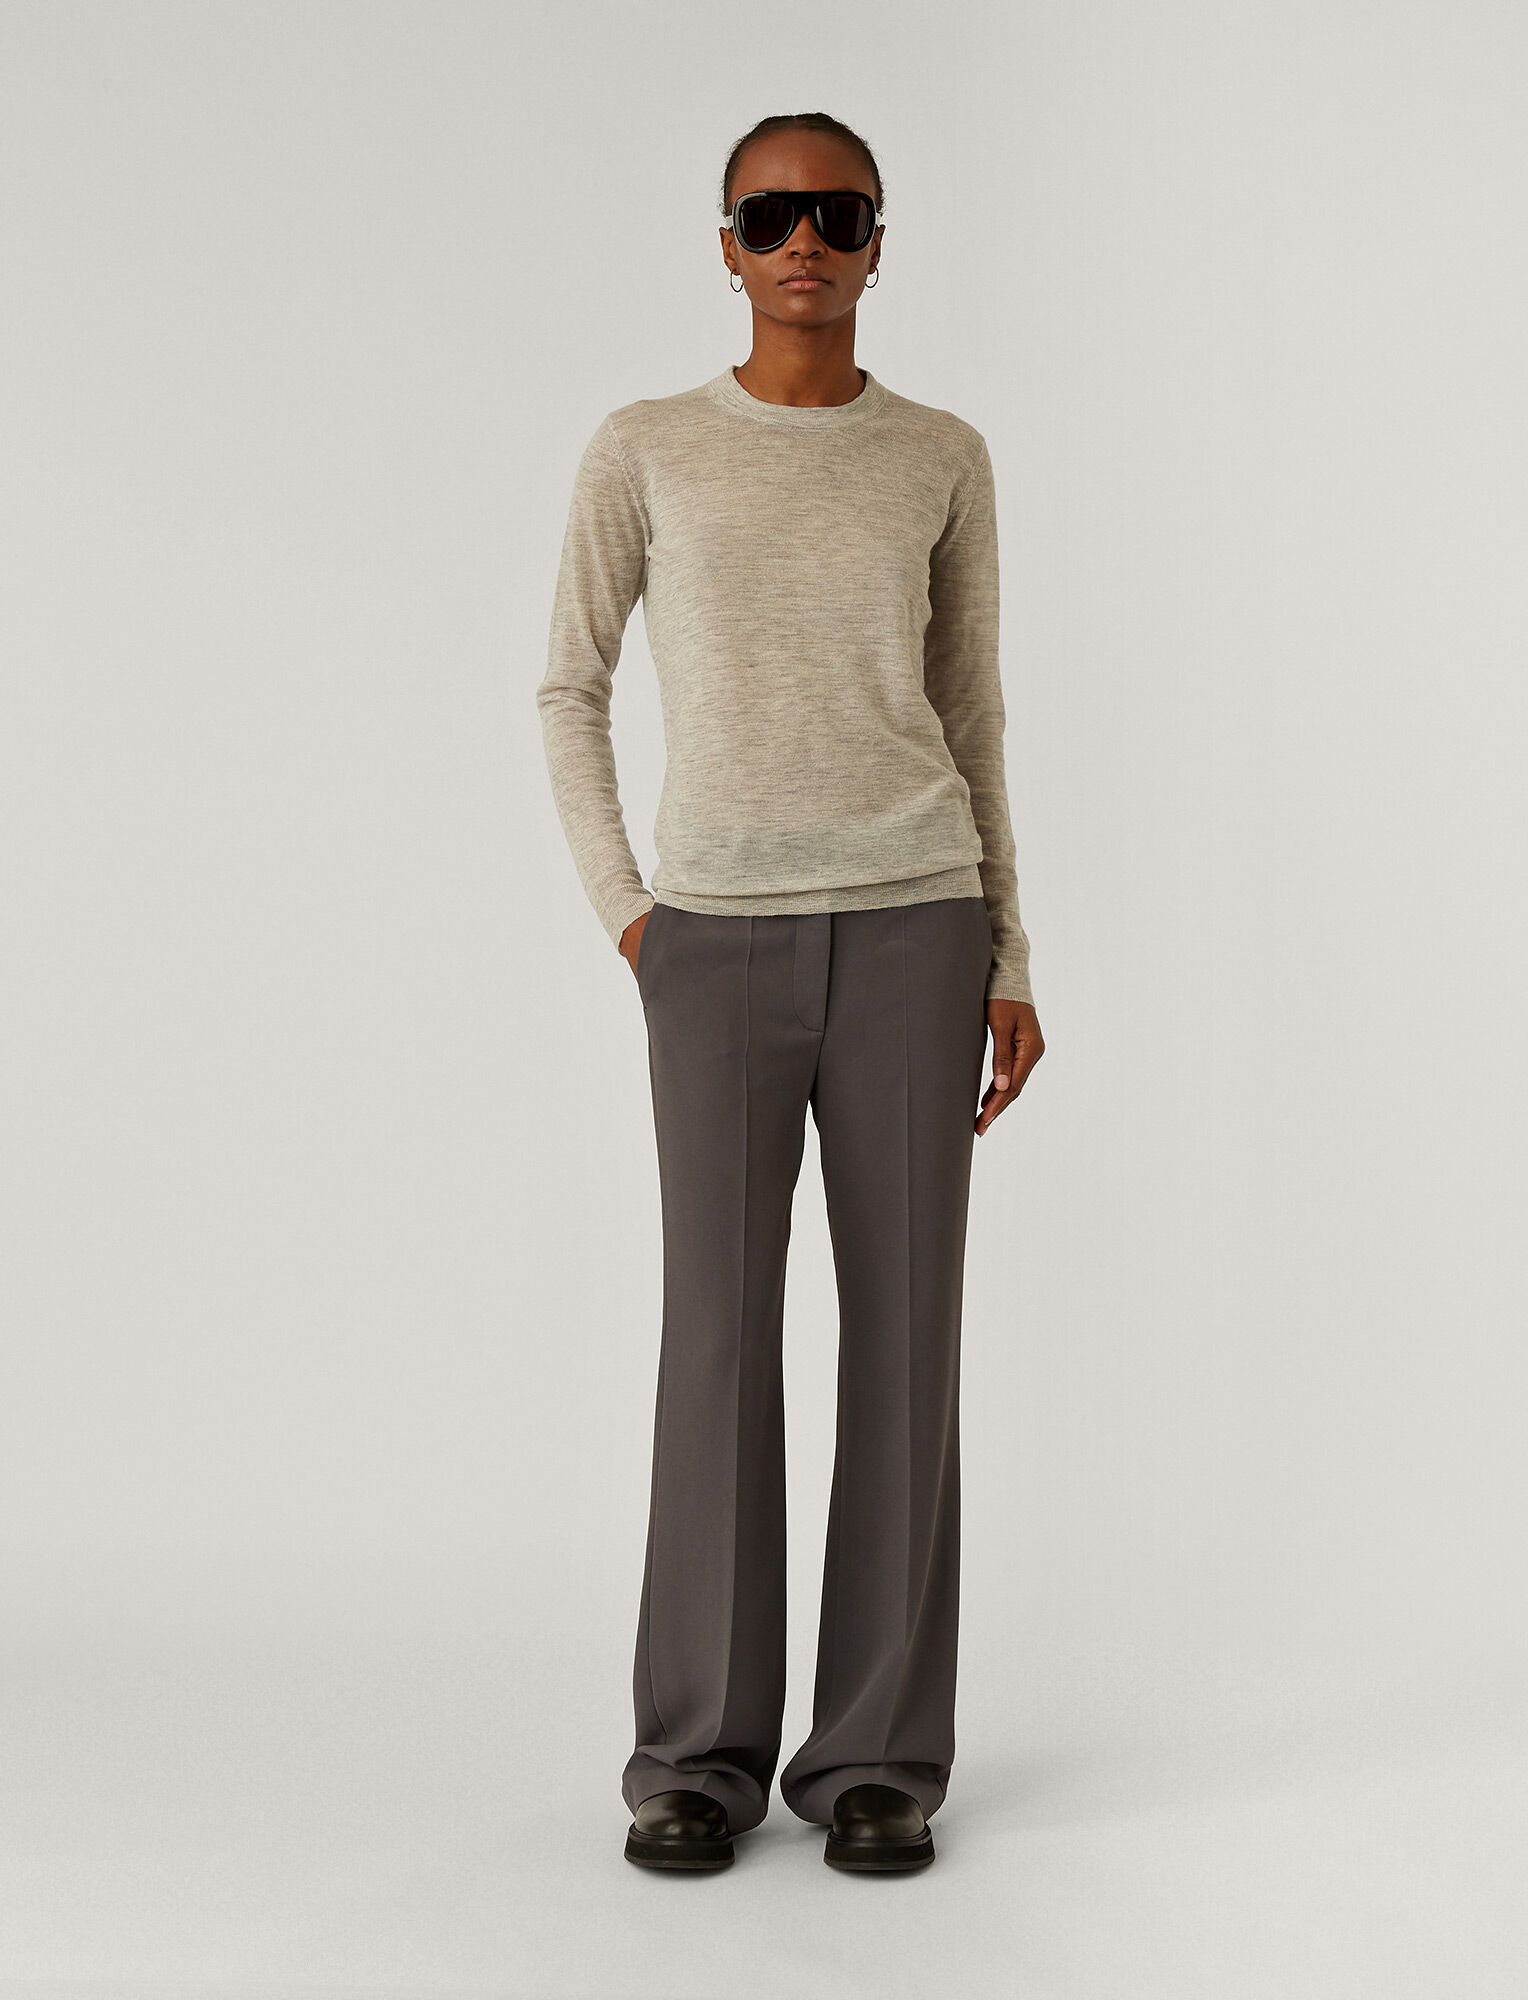 Joseph, Cashair Jumper, in GREY CHINE